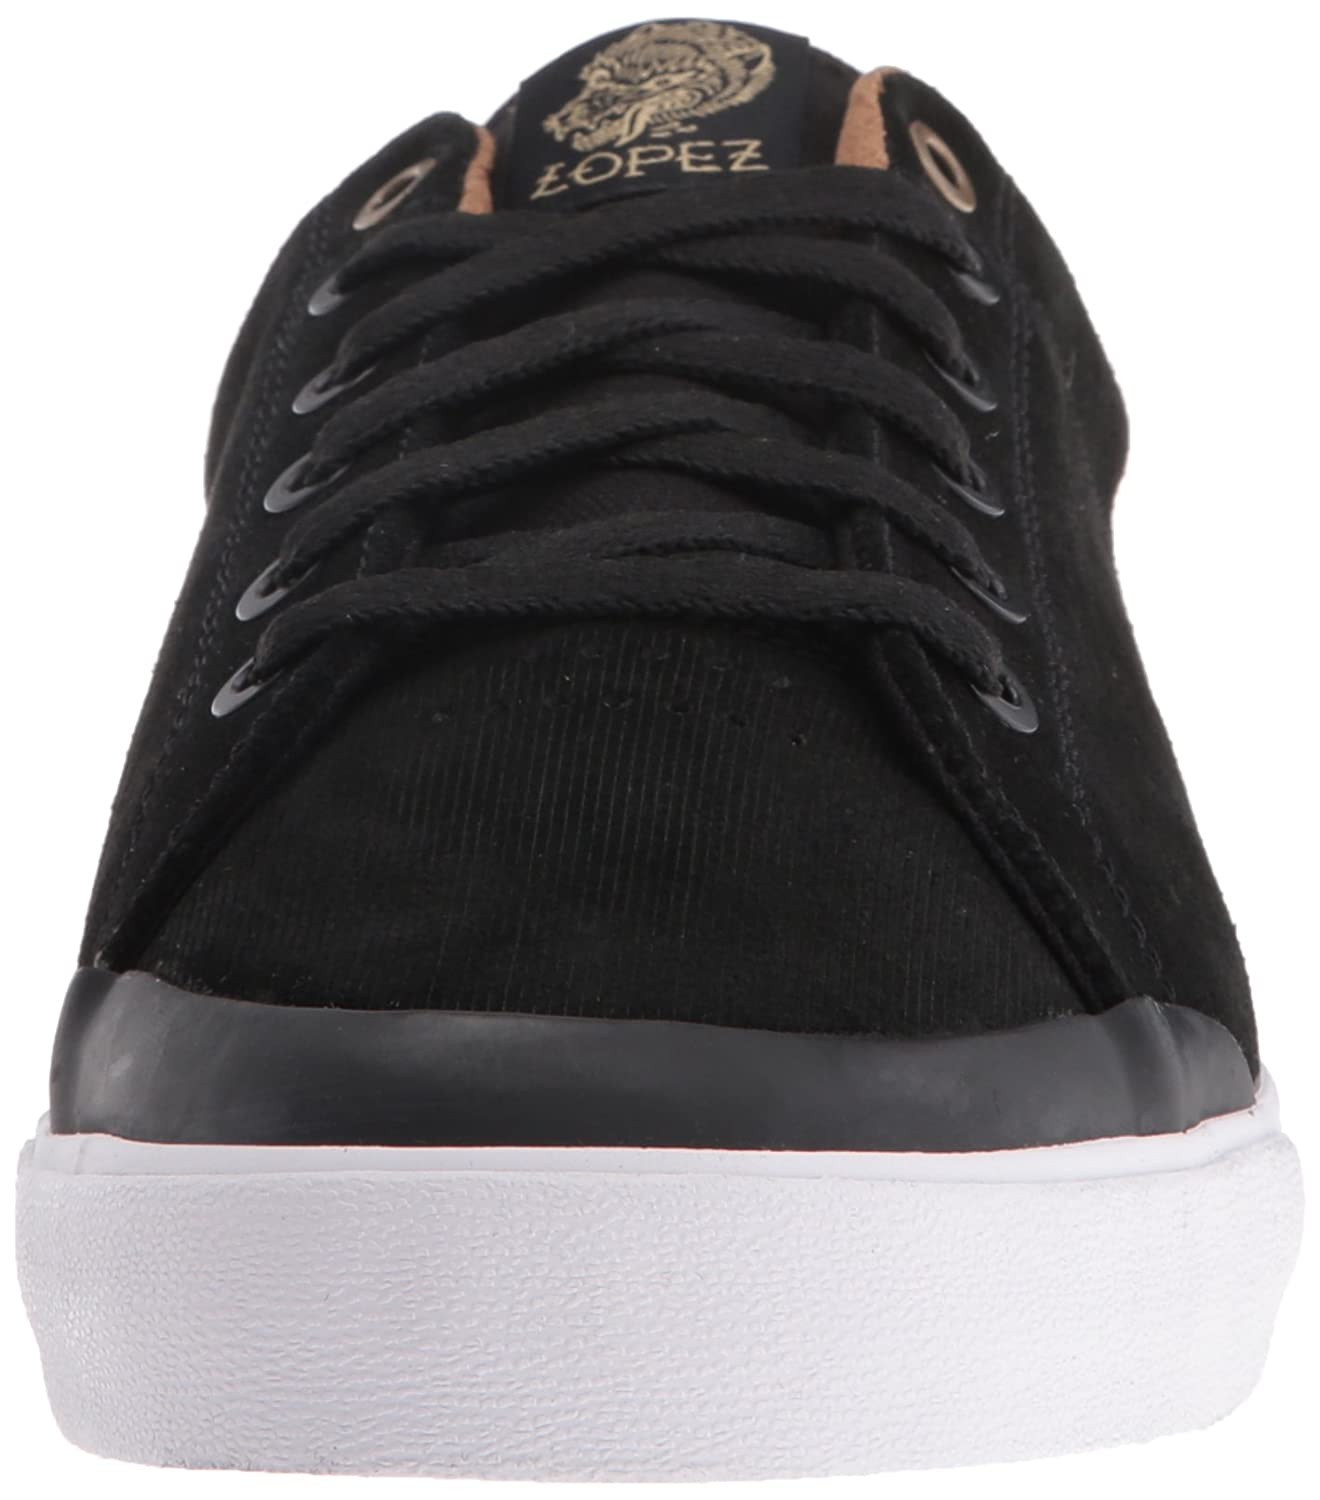 Amazon.com  C1RCA Men s AL50R Adrian Lopez Durable Cushion Sole Skate Shoe  Skateboarding  Shoes 3f957f861c